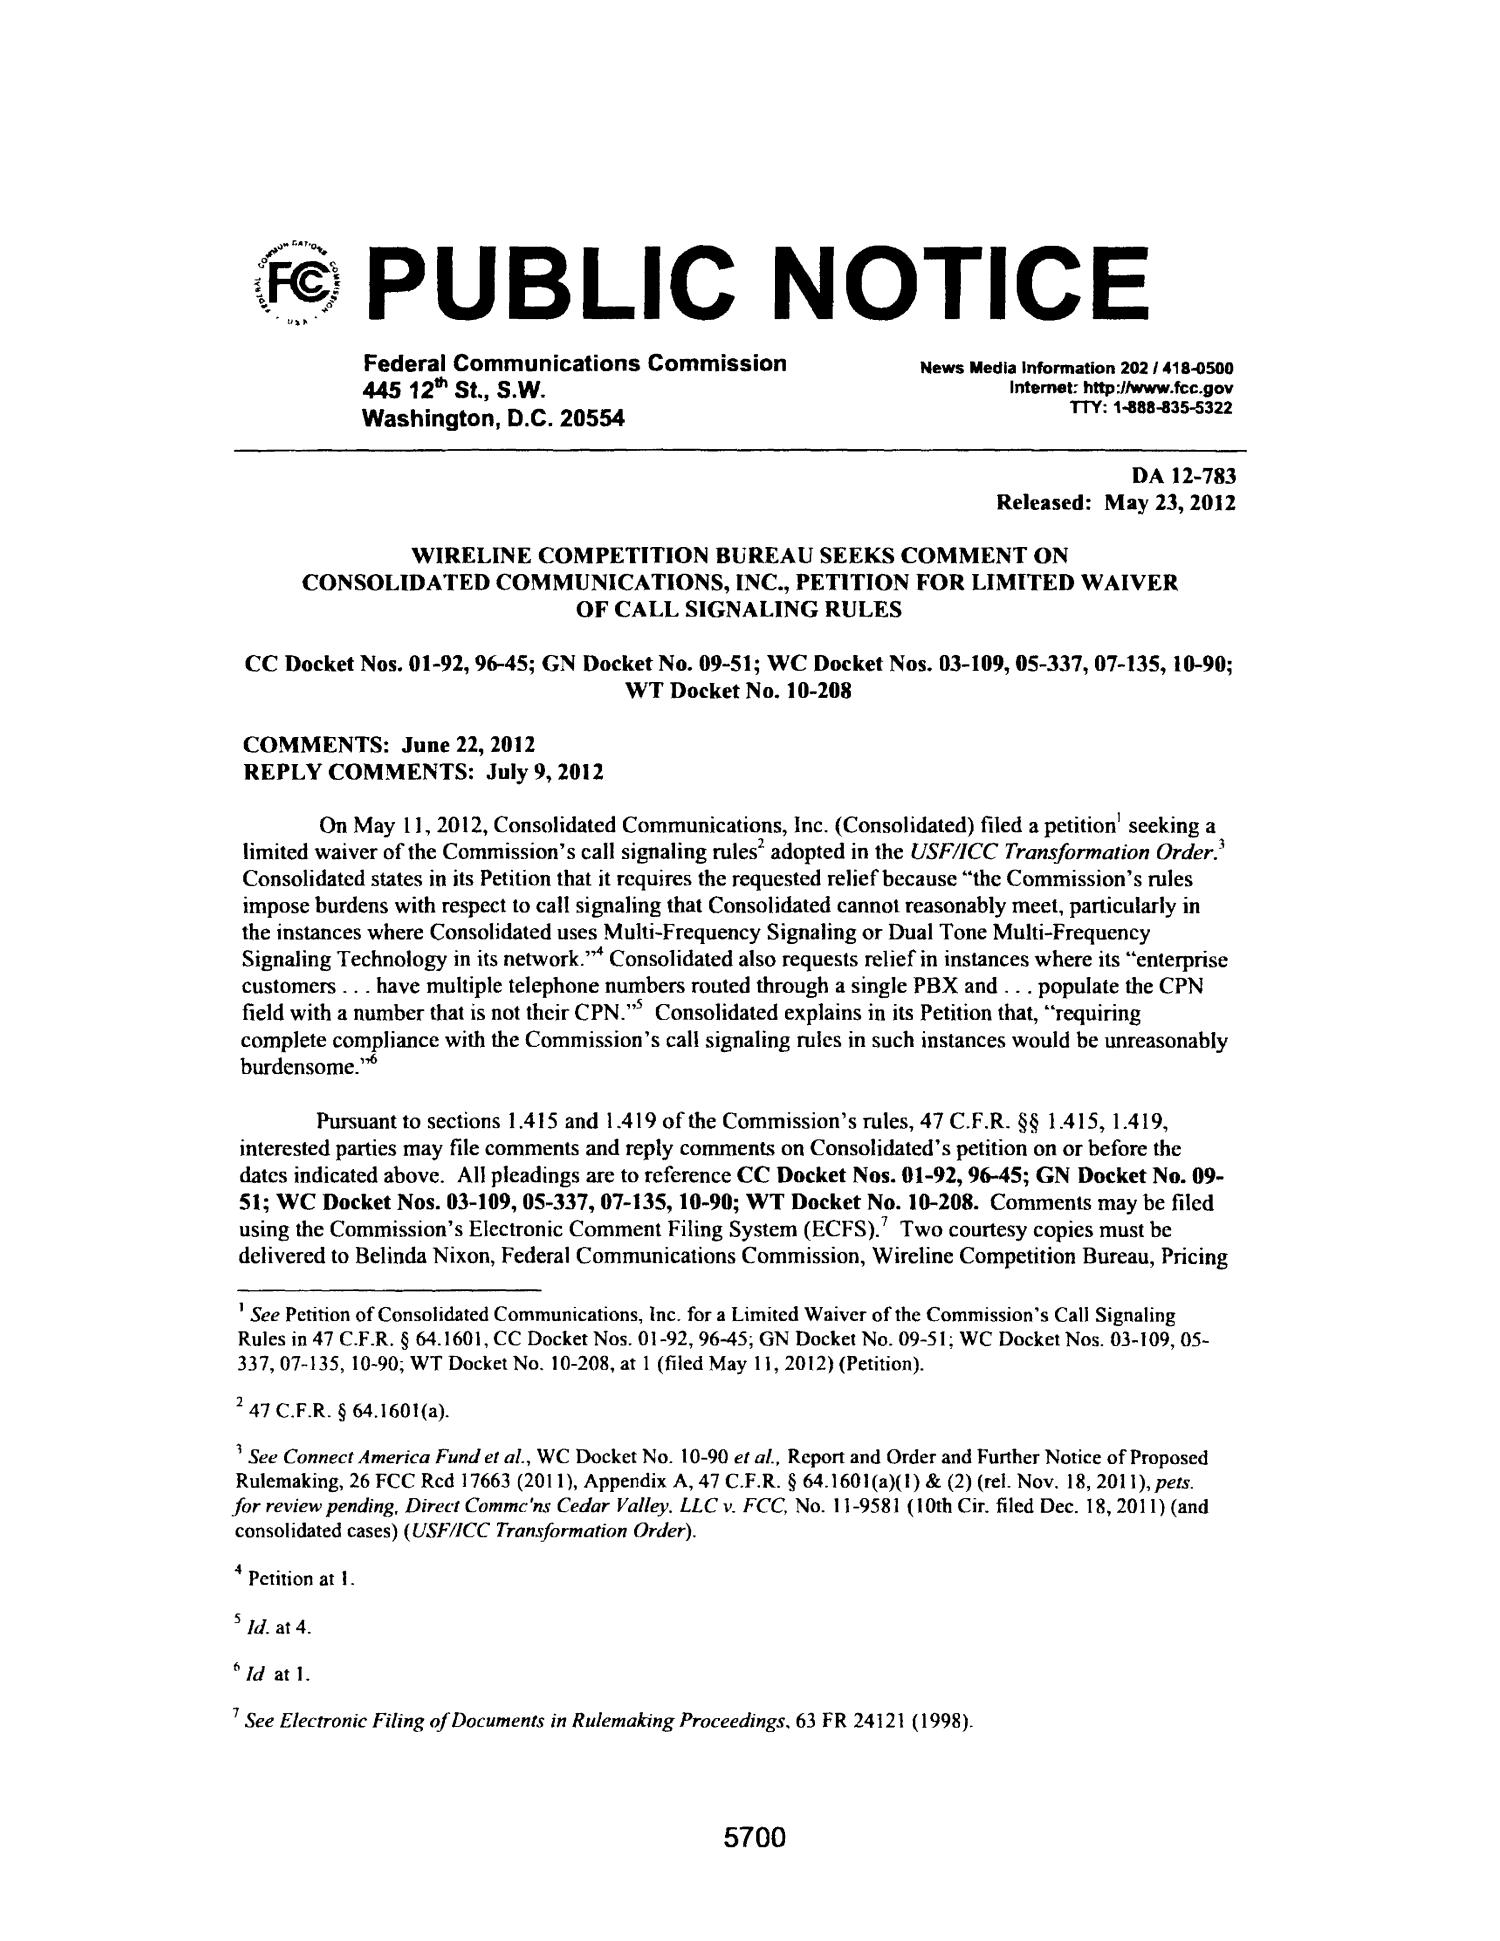 FCC Record, Volume 27, No. 7, Pages 5674 to 6652, May 23 - June 15, 2012                                                                                                      5700